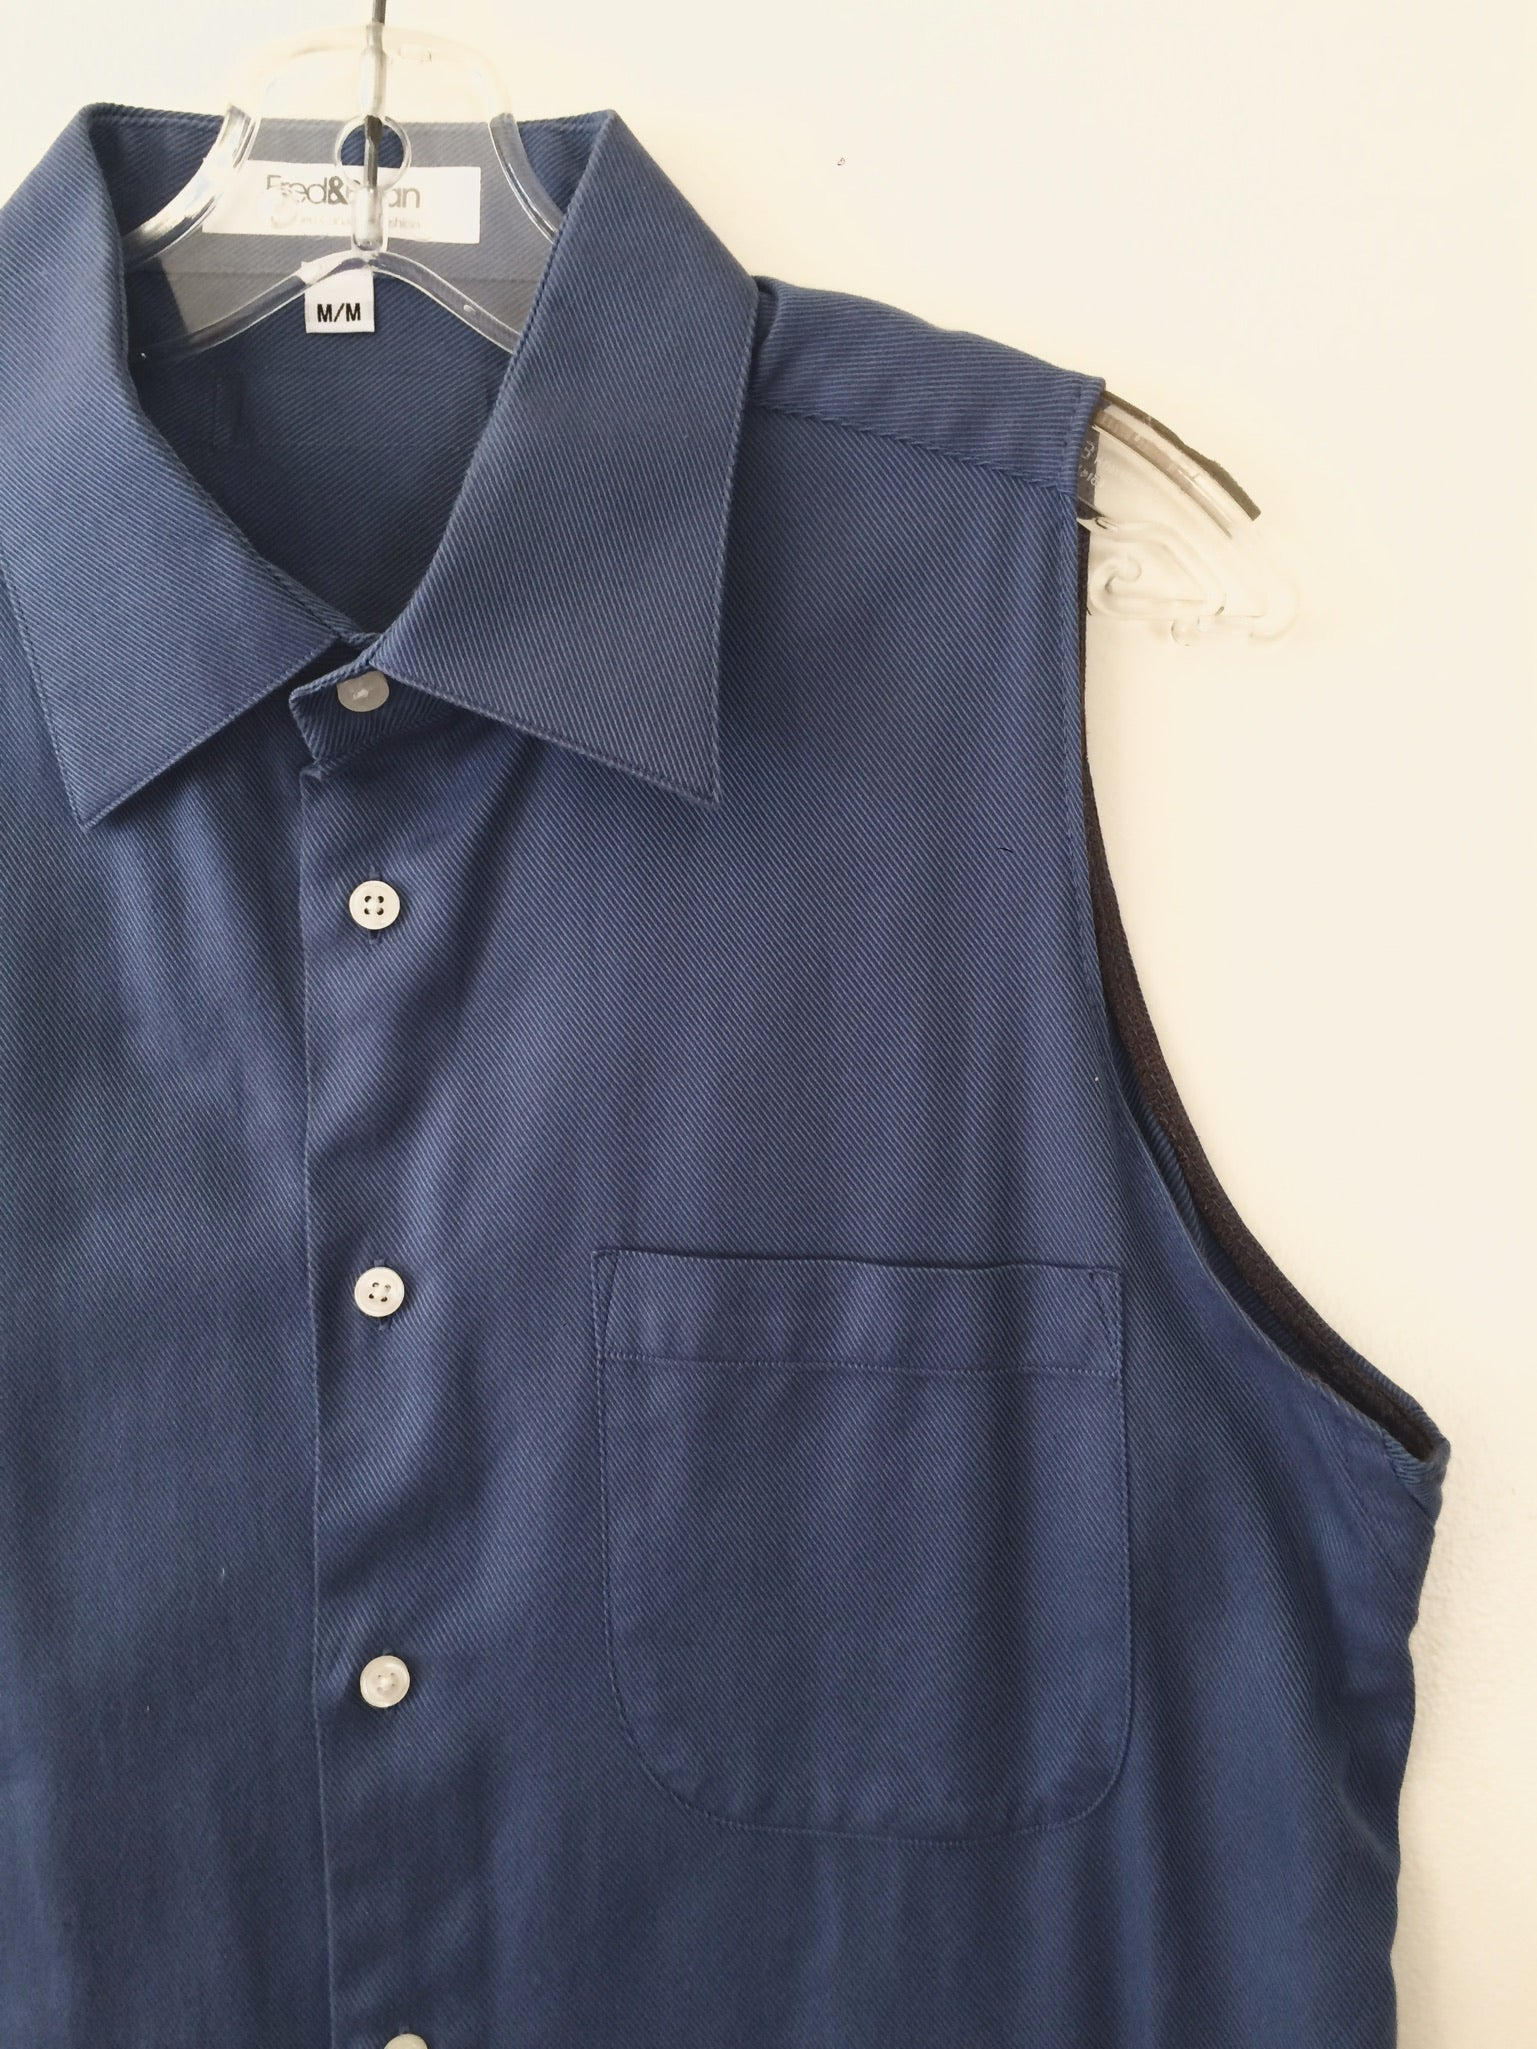 90's Blue Cotton Twill -M-